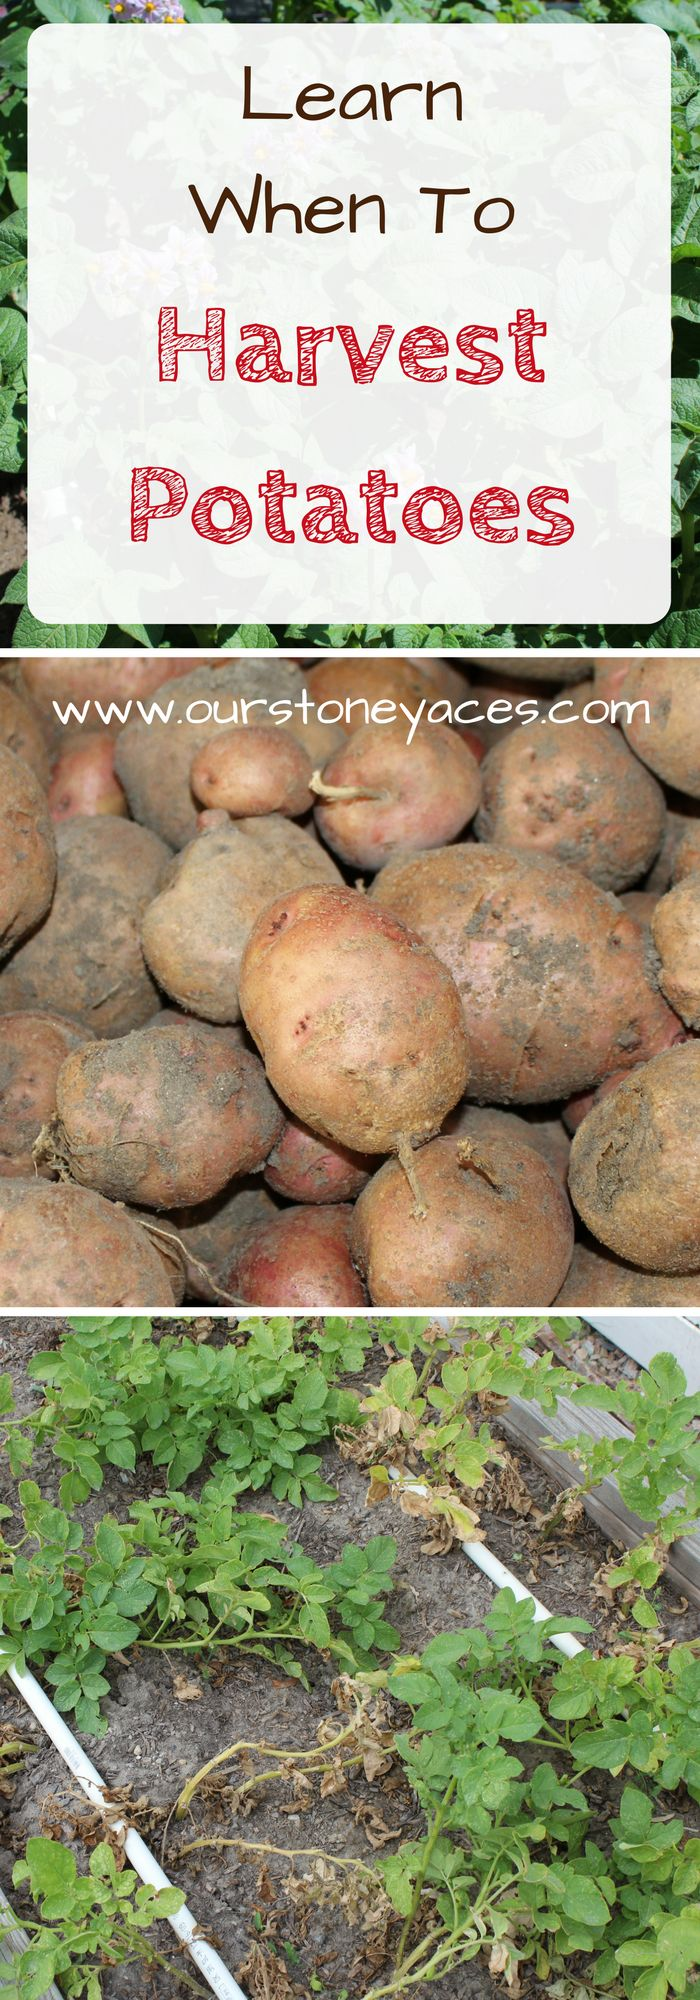 When to Harvest Potatoes. Knowing when to harvest potatoes from you backyard garden can be a bit tricky. This post will help you know when to harvest potatoes for a great crop of nice sized spuds!